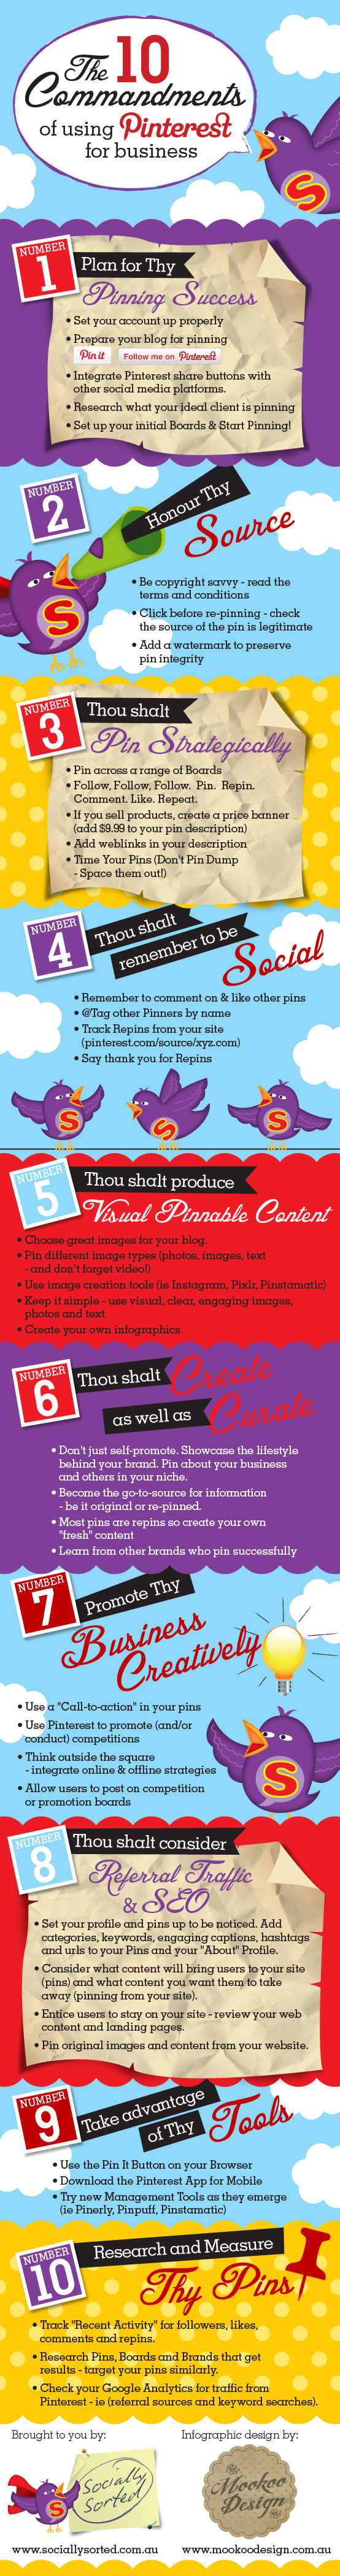 Pinterest-10-commandments-for-businesses